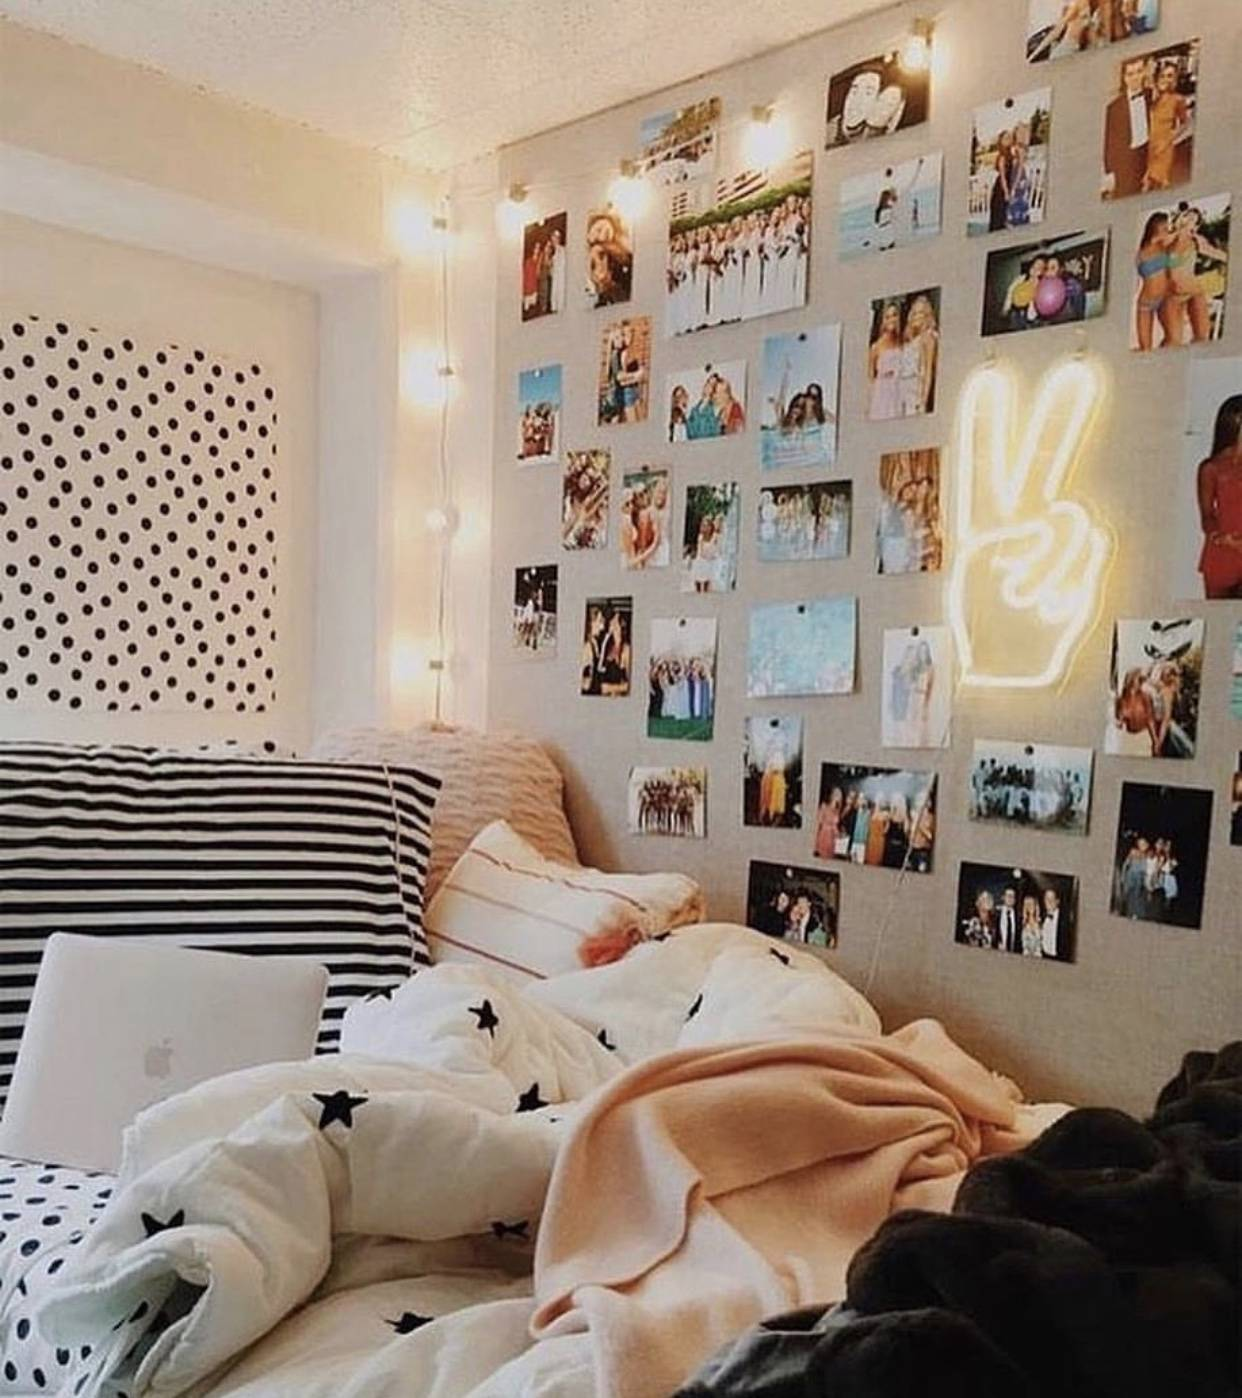 Vsco Decor Ideas Must Have Decor For A Vsco Room The Pink Dream